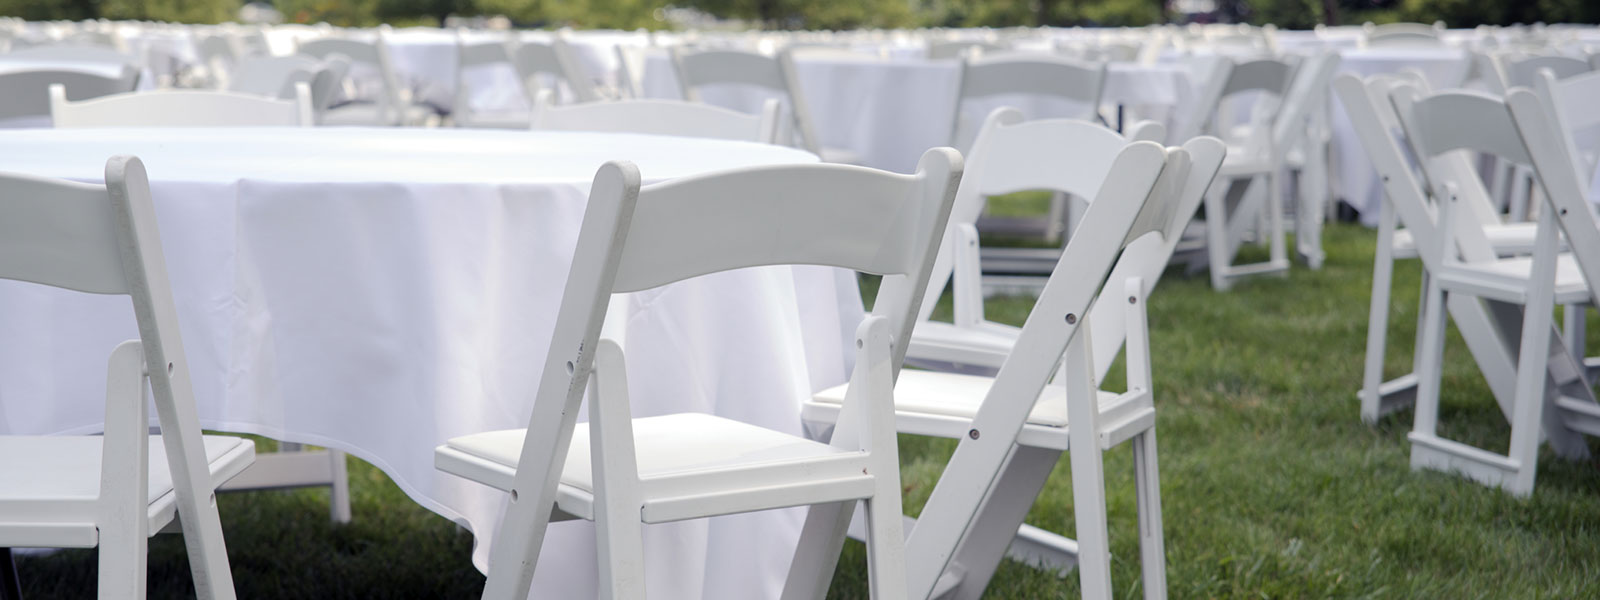 Rental Chairs And Tables Party Rentals In Portland Or Event Rental And Party Supply